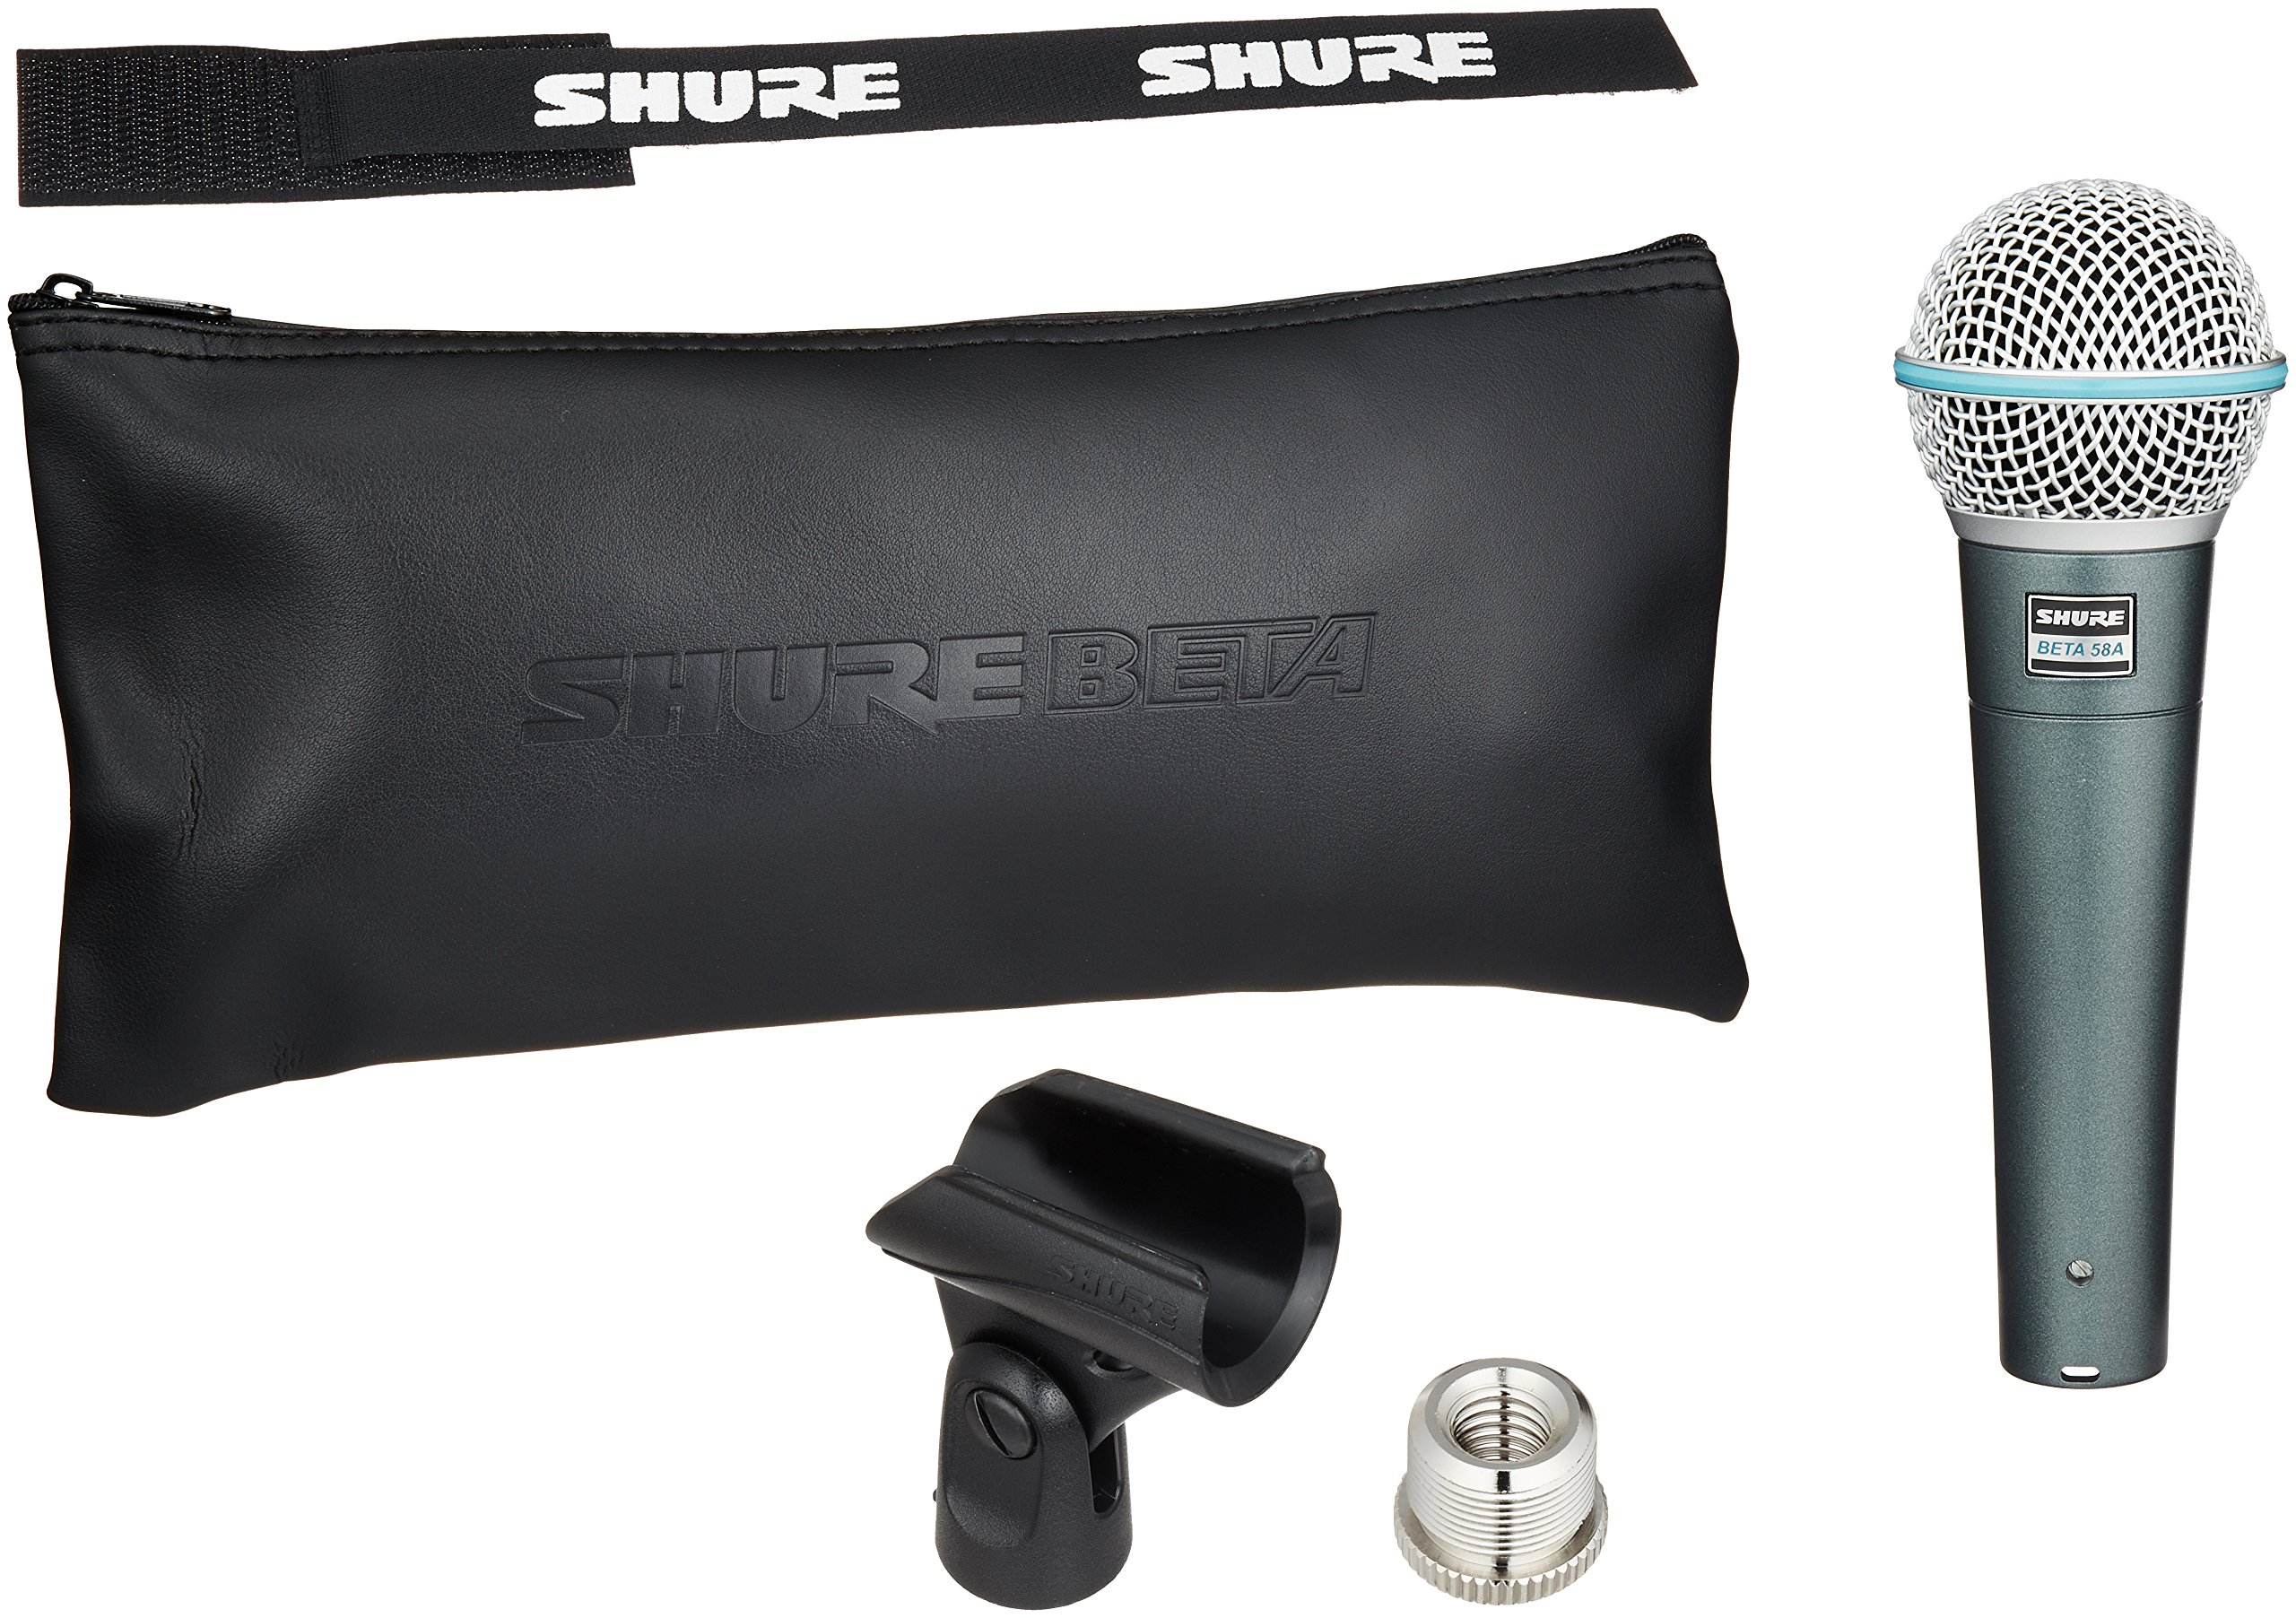 Shure BETA 58A Supercardioid Dynamic Microphone with High Output Neodymium Element for Vocal/Instrument Applications by Shure